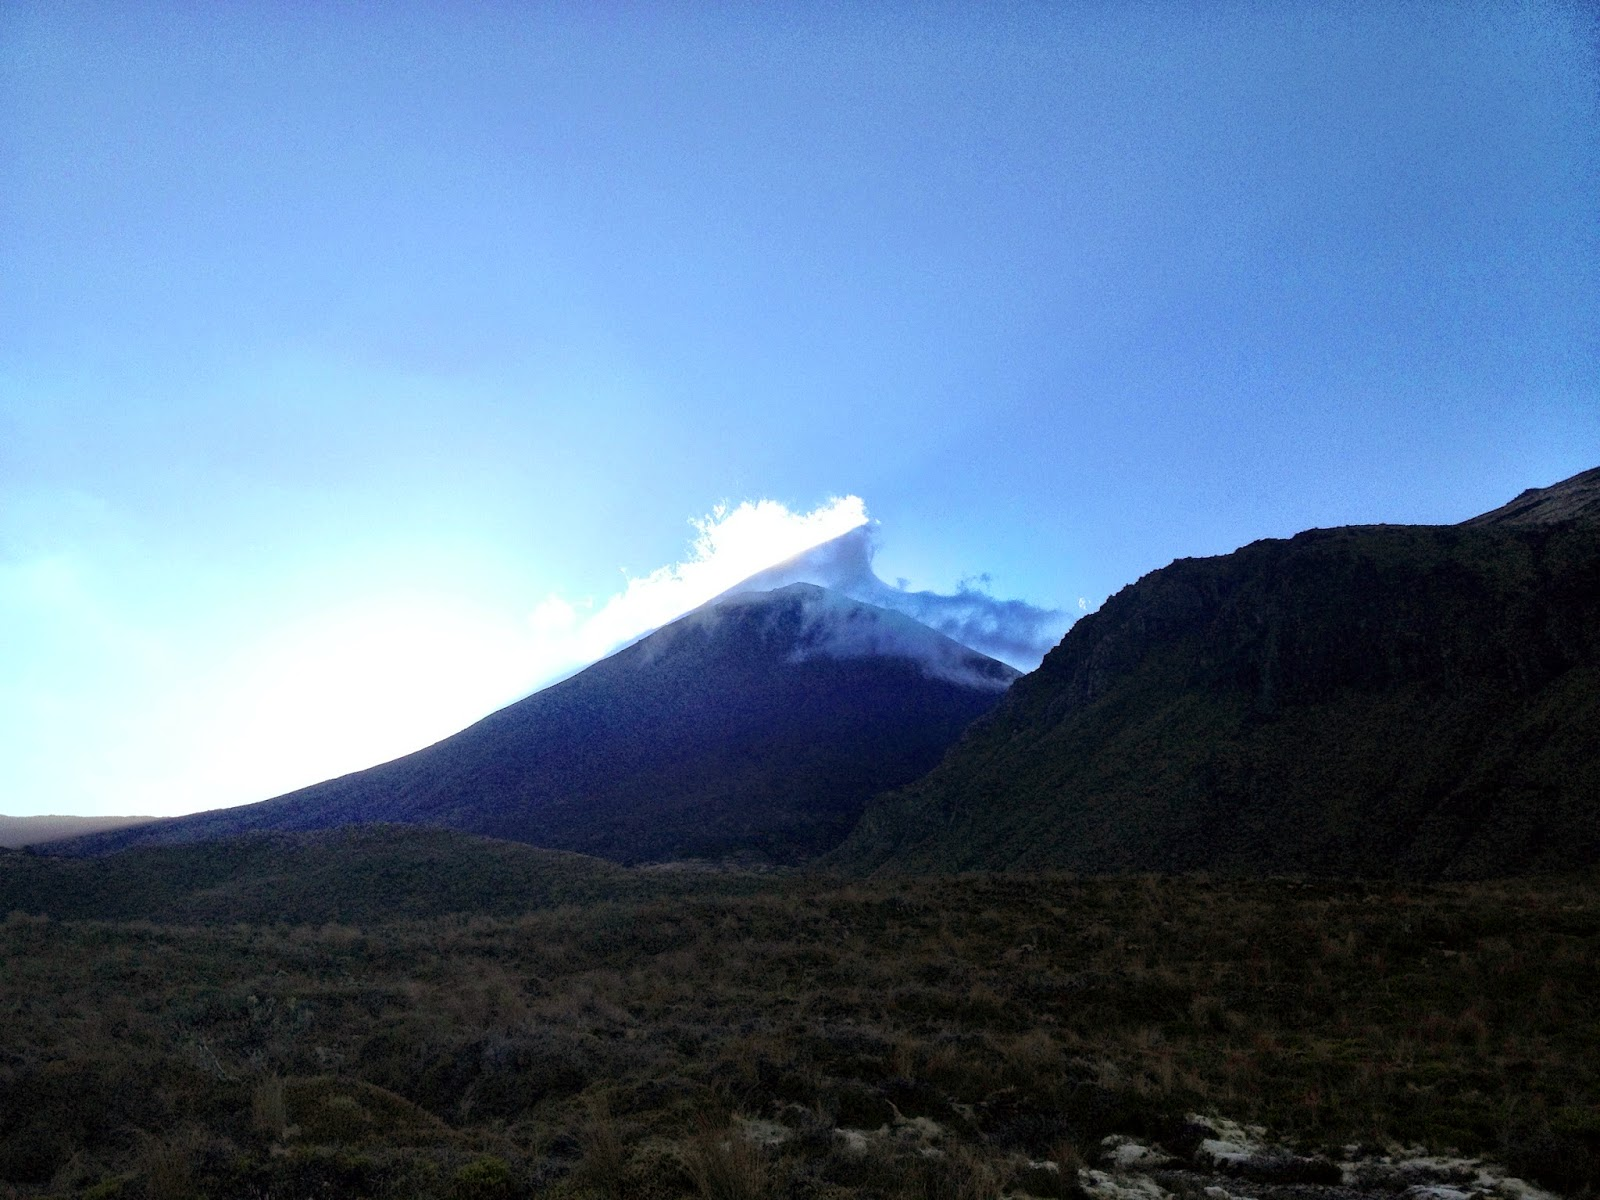 Sunrise next to Mount Ngauruhoe, Tongariro National Park, New Zealand